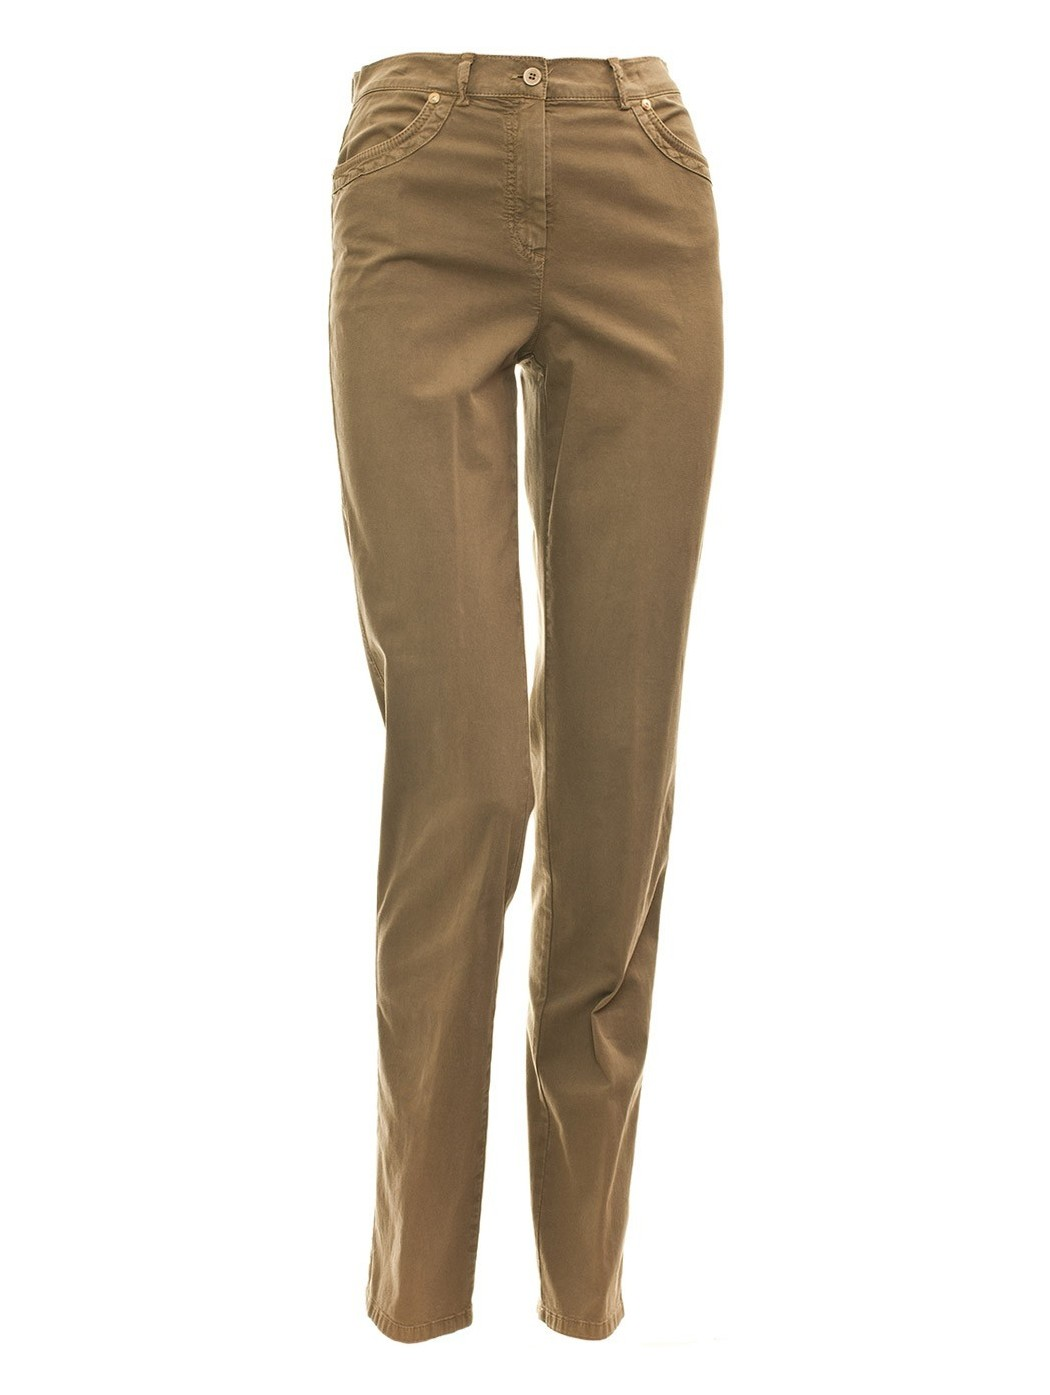 Pucci trousers